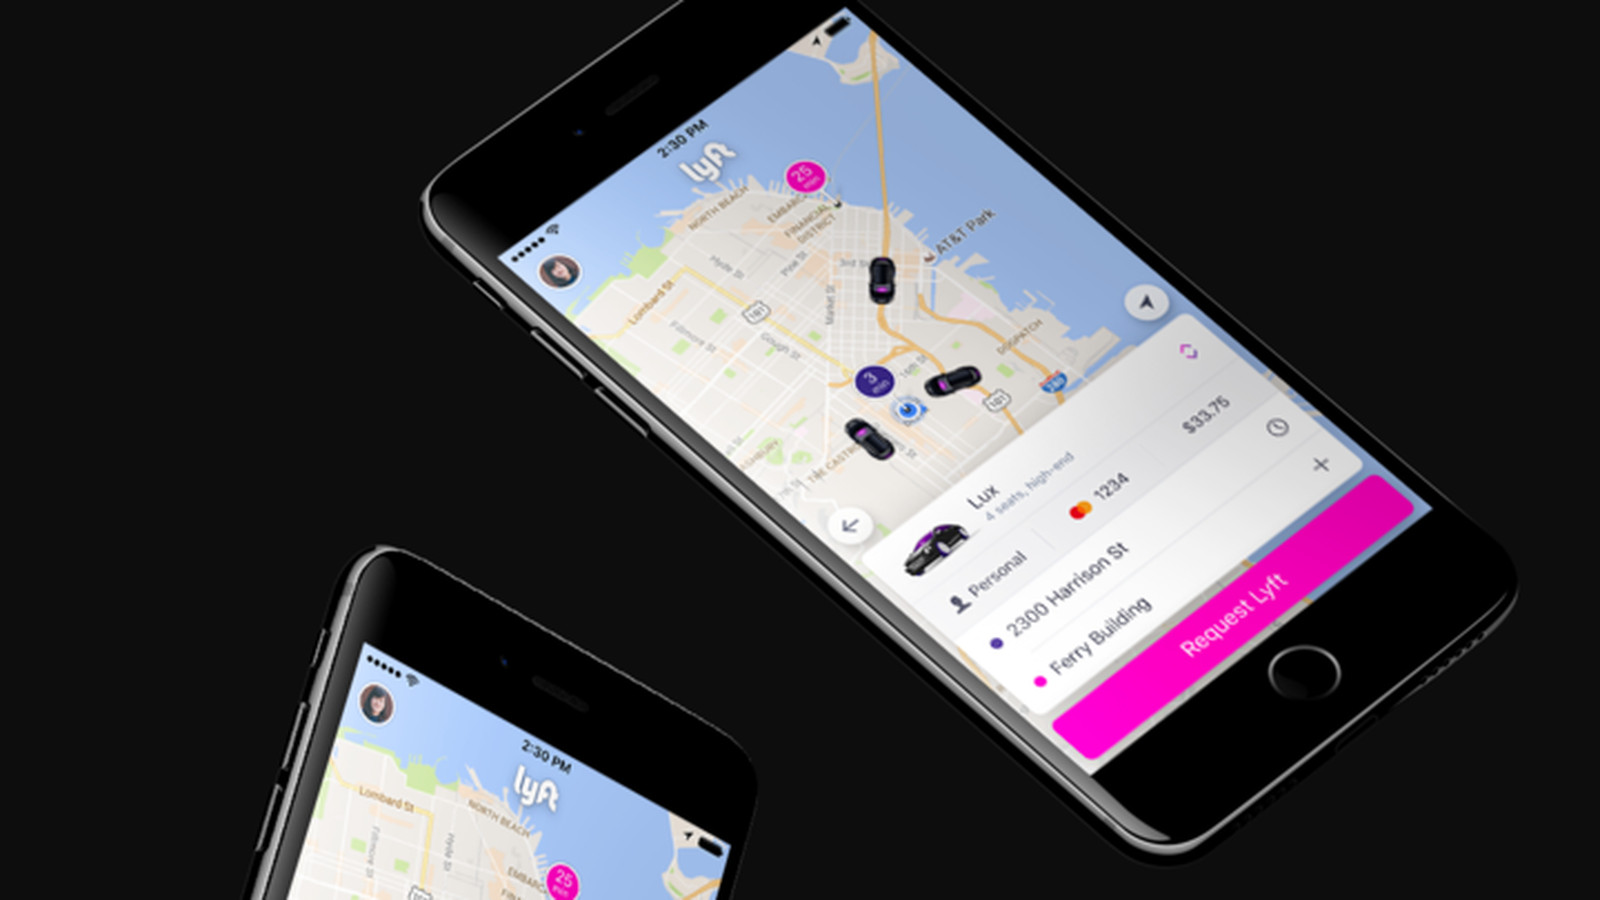 Though Demand for UberBlack has Dropped, Lyft Launched its own Luxury Service in SF, la and NY